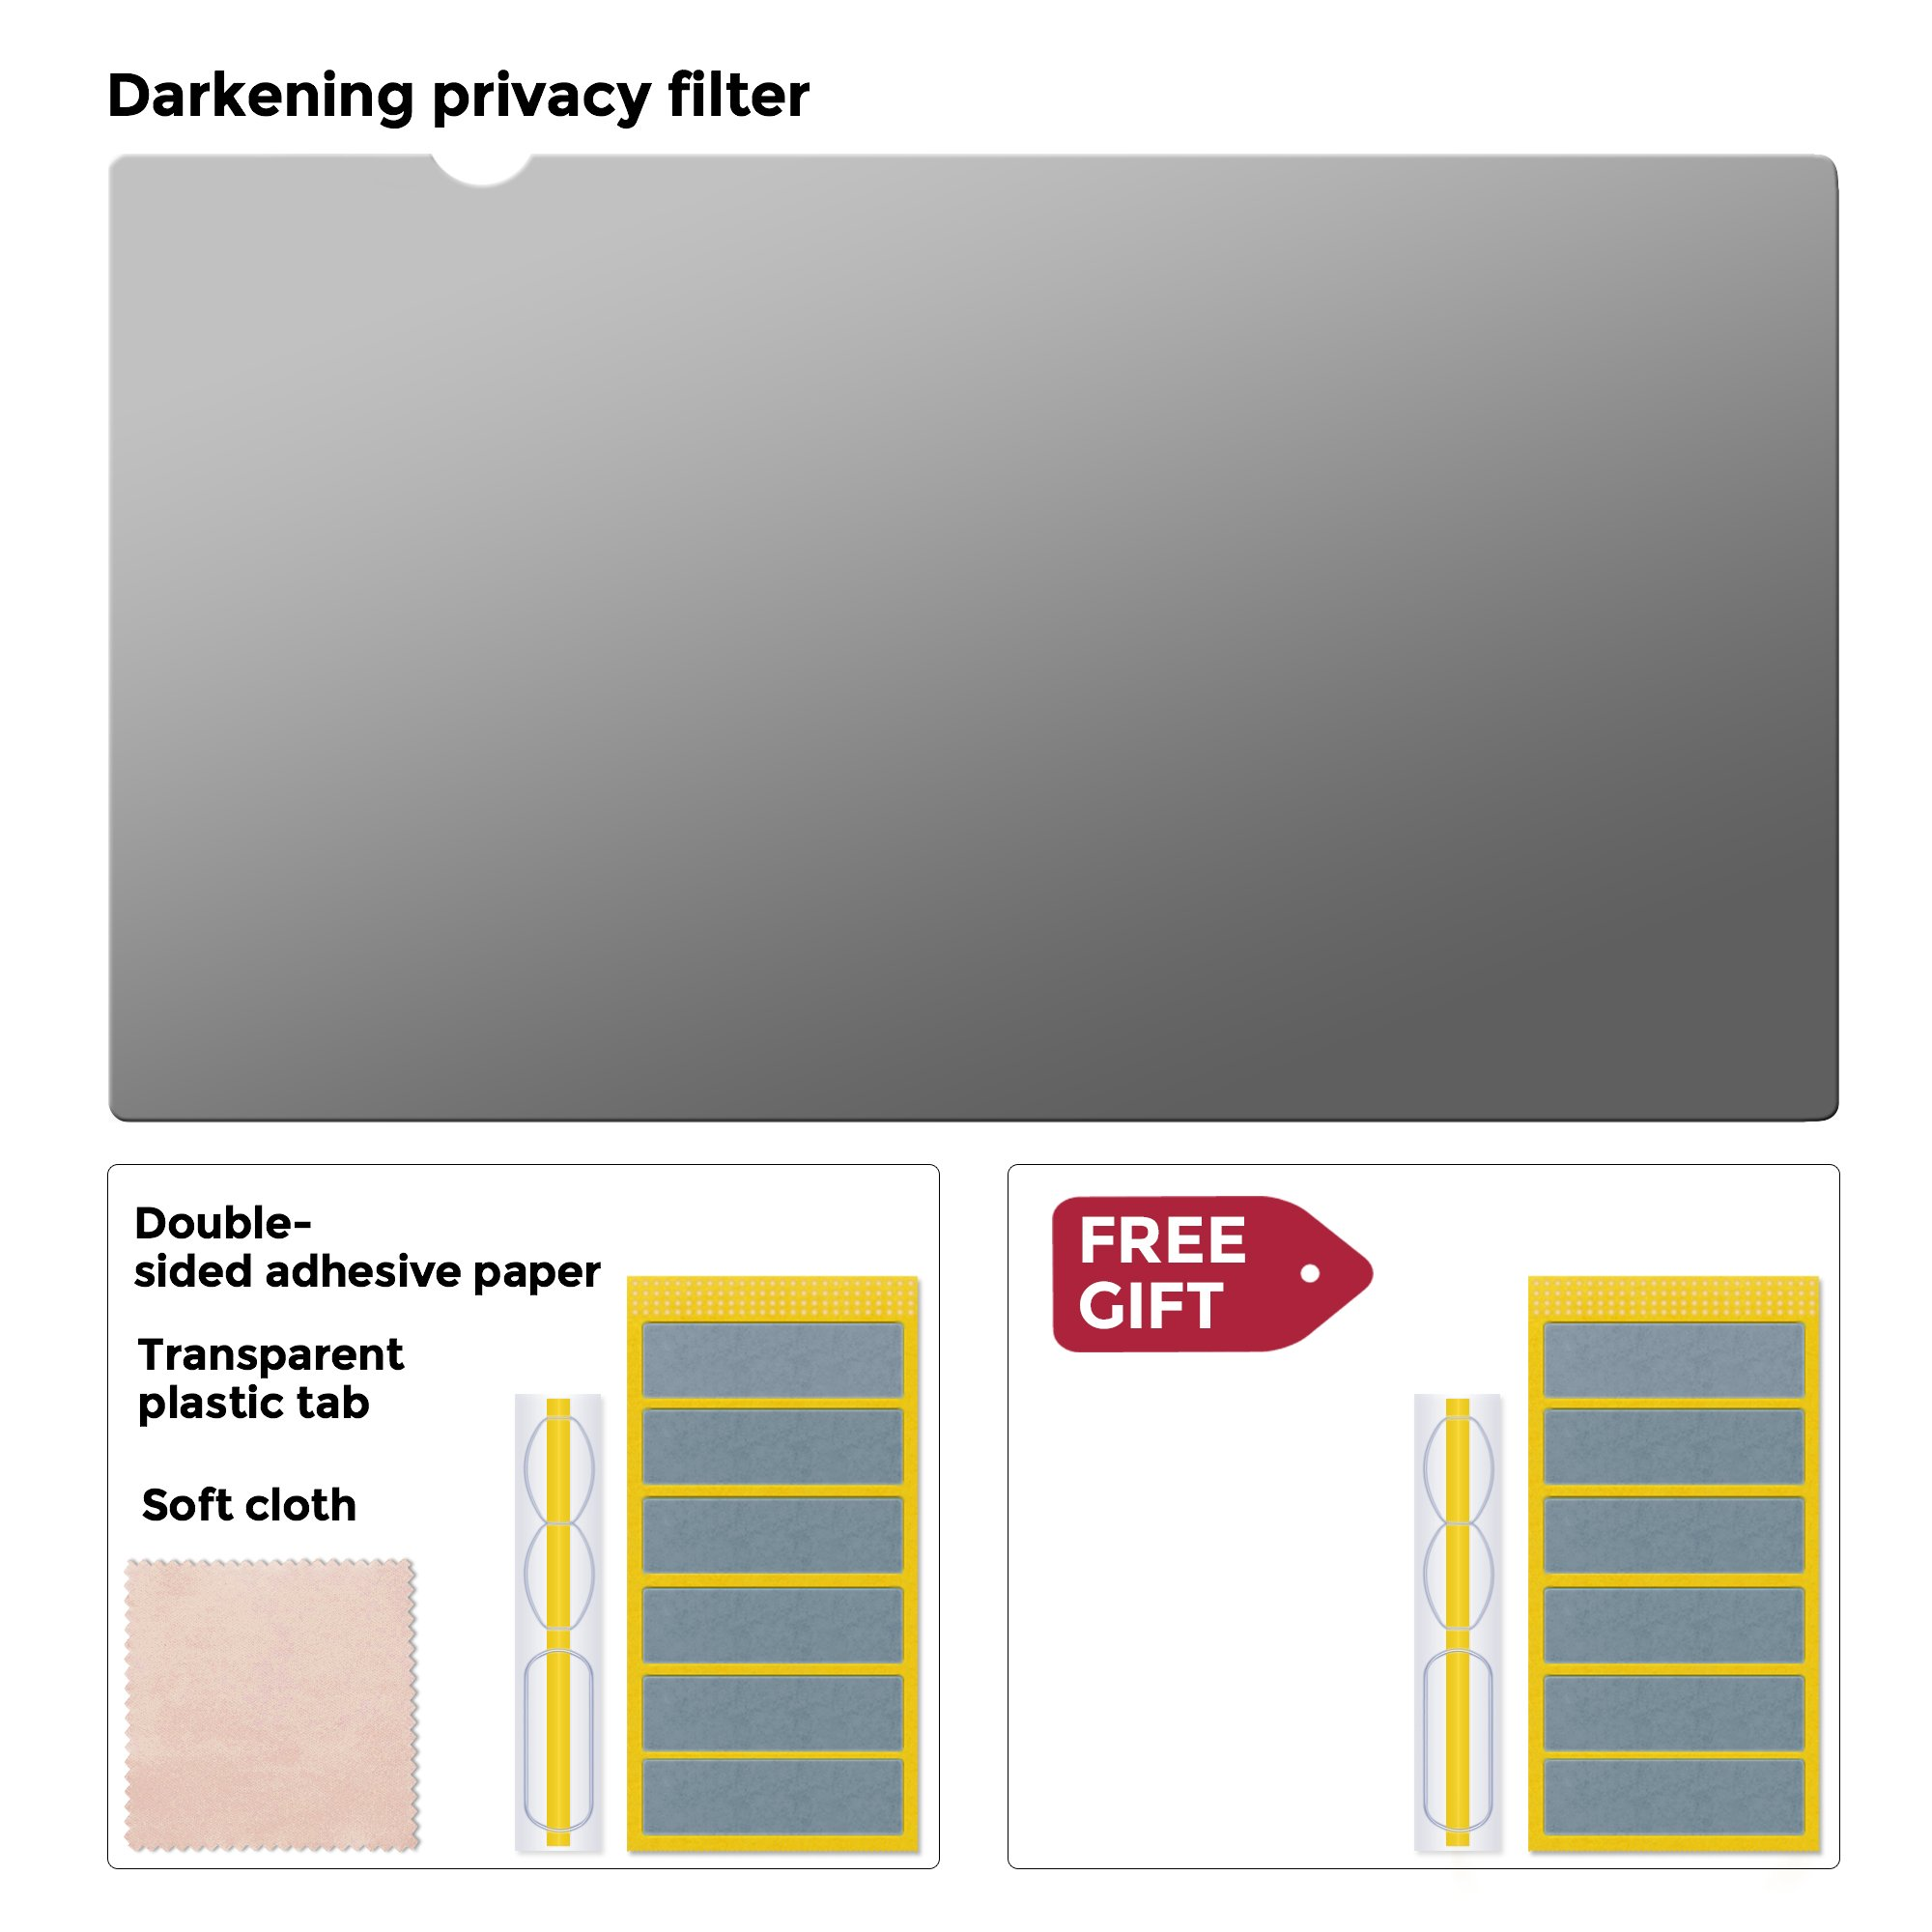 Square 19 inch (Diagonally Measured) 5:4 ratio size 14.83x11.89 inch (377x302mm) Сomputer Privacy Screen Filter for Desktop/Laptop LCD Computer Monitor, Anti-Glare. CHECK YOUR MONITOR SIZE by Privox (Image #7)